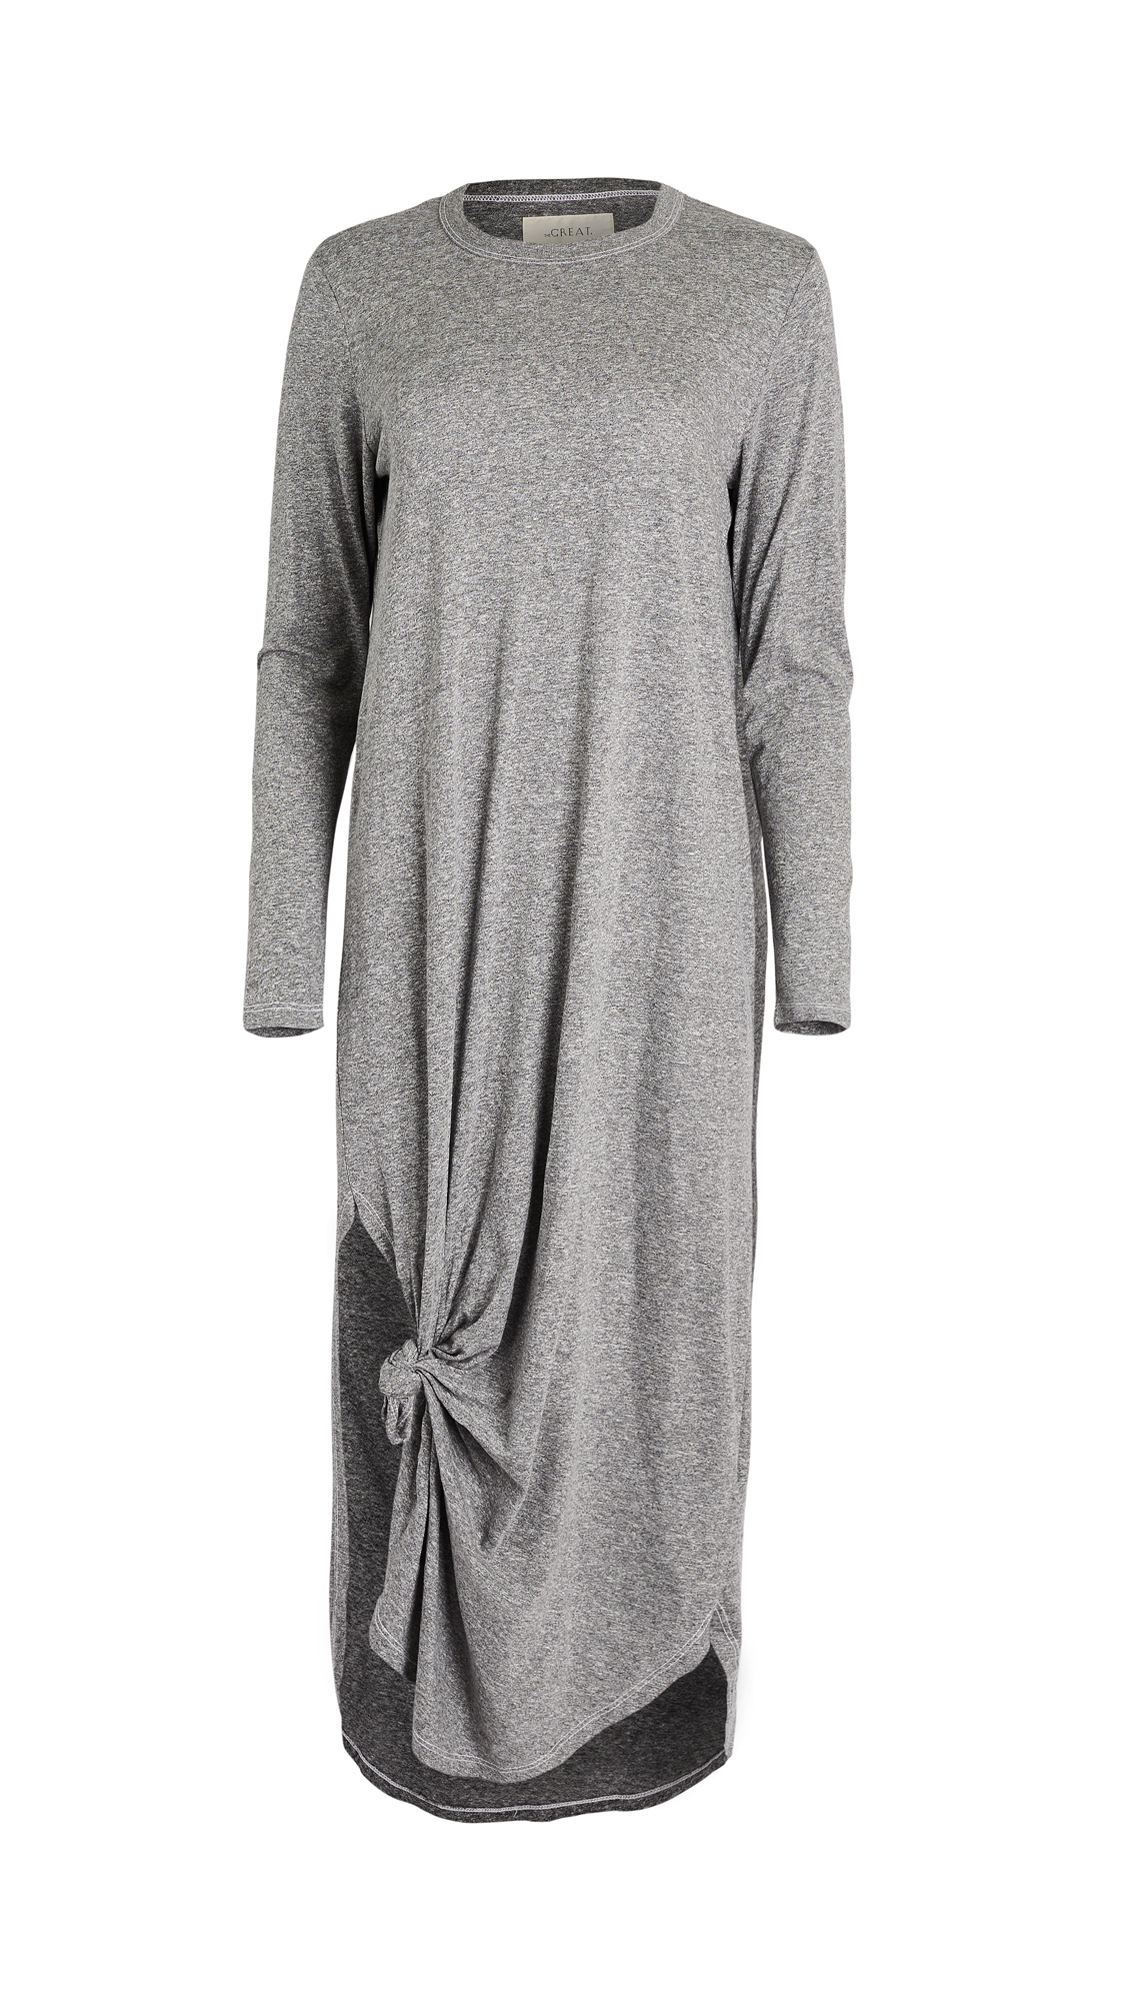 THE GREAT. Long Sleeve Knotted Tee Dress